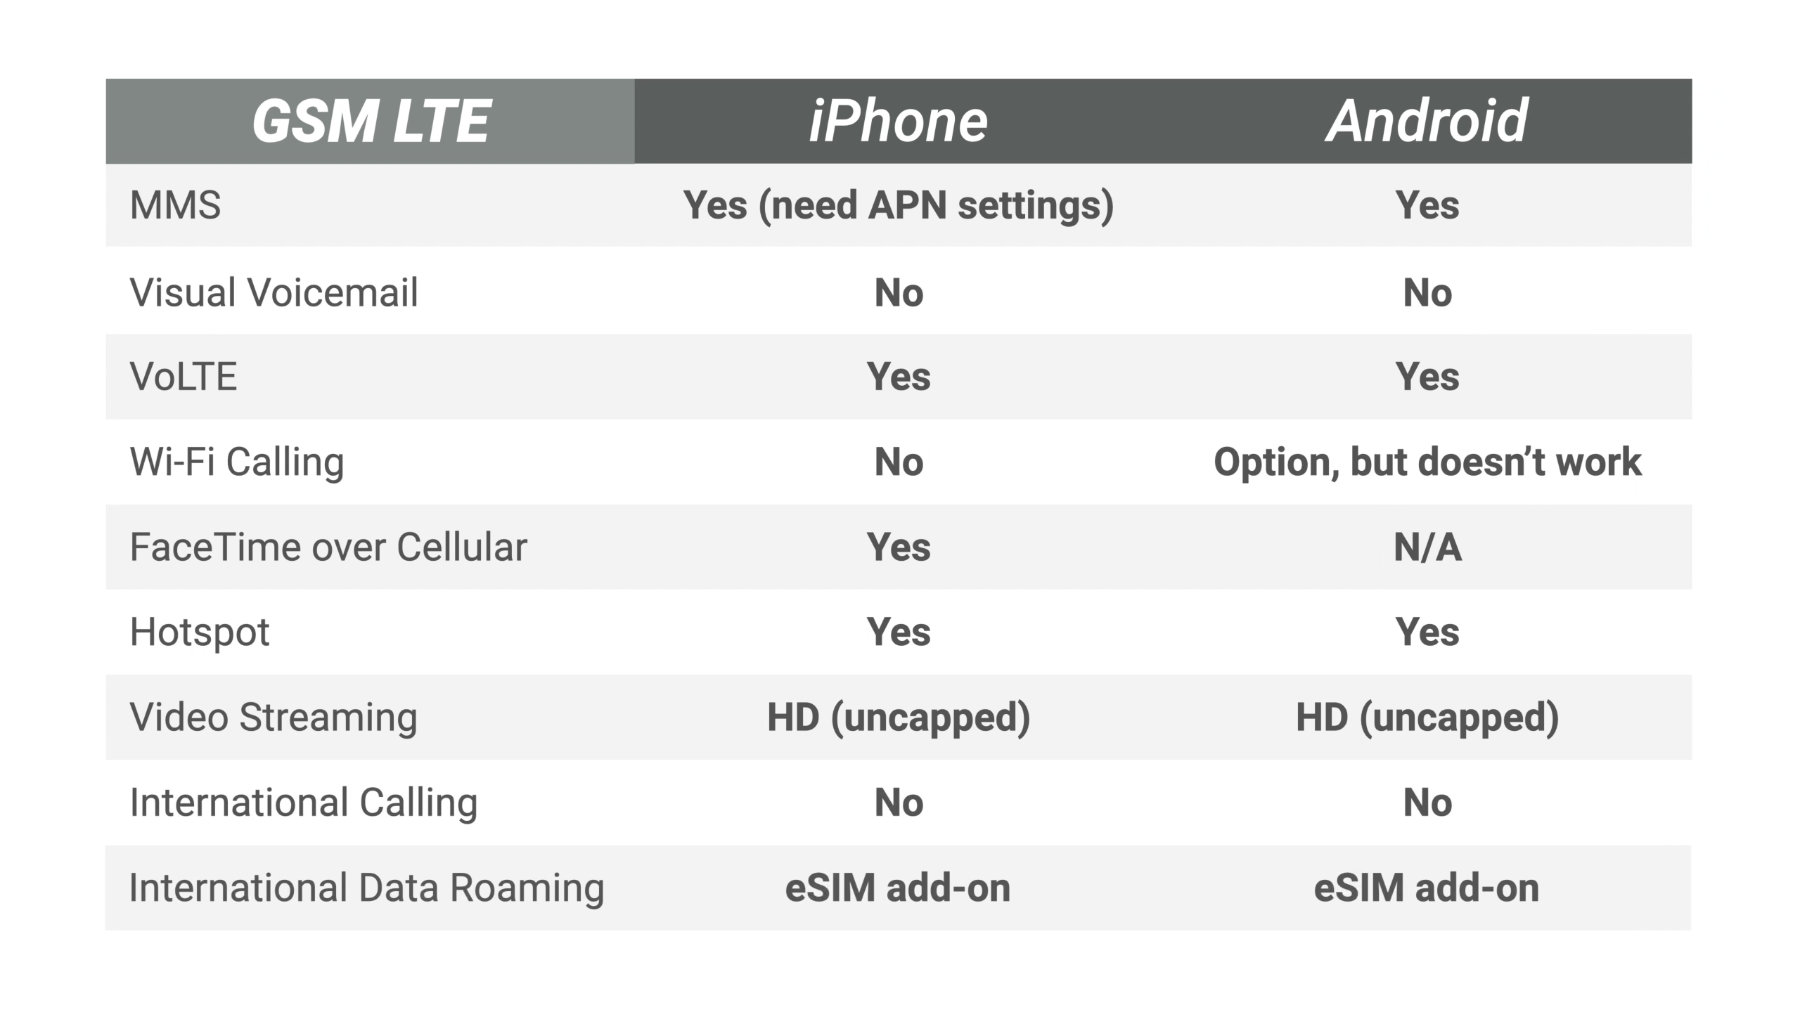 US Mobile GSM LTE features on iPhone and Android